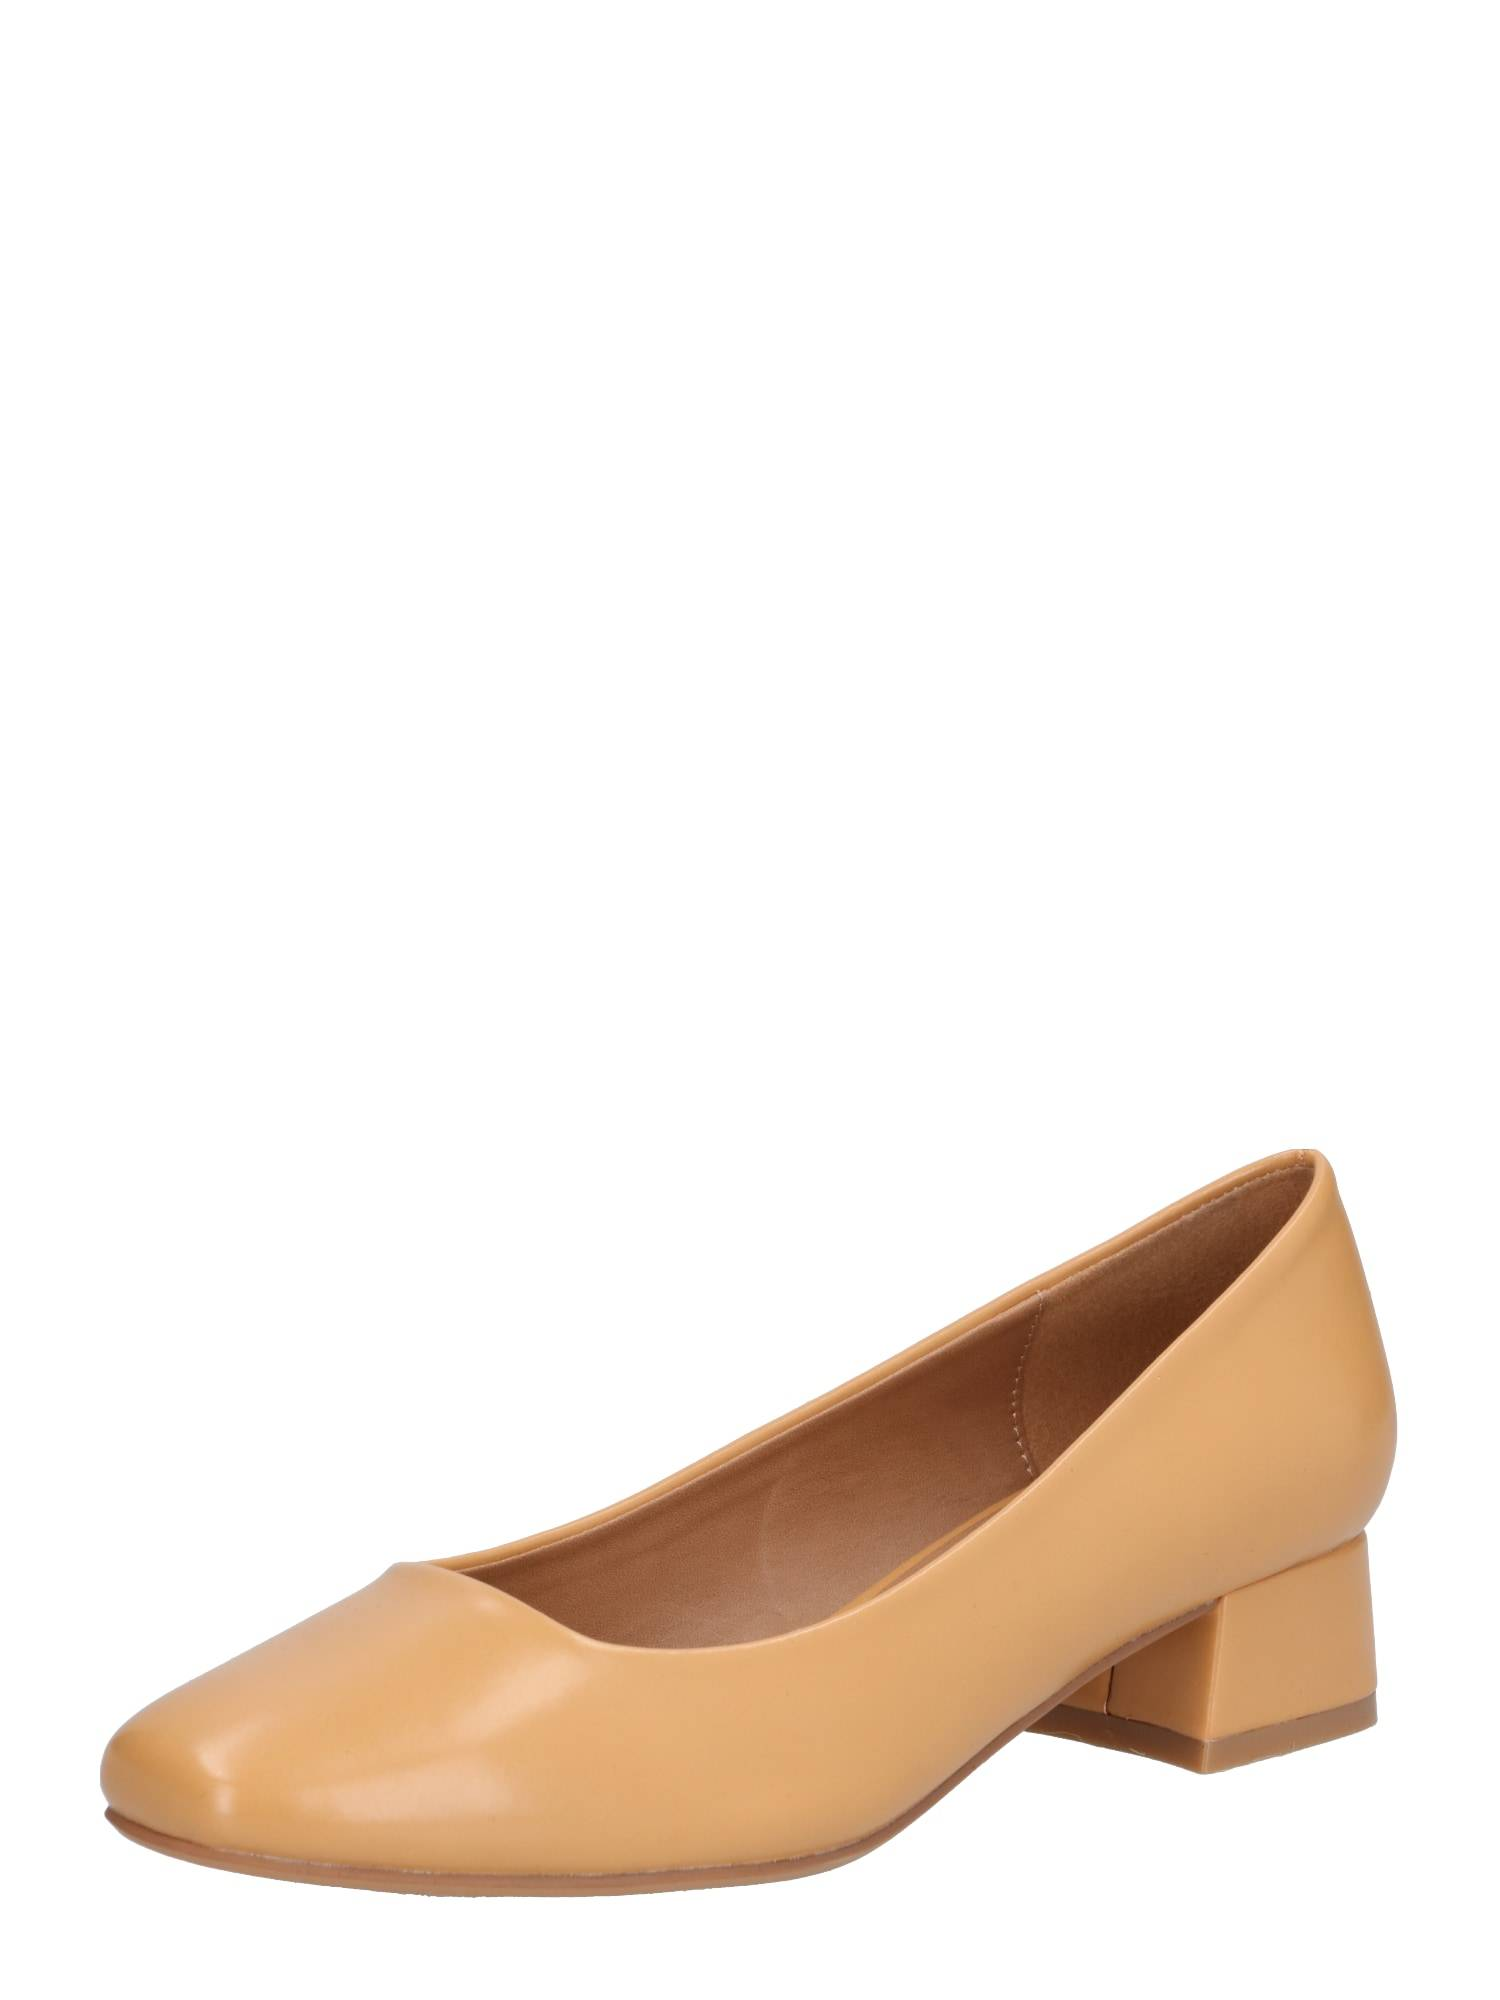 ABOUT YOU Escarpins 'Fiona'  - Beige - Taille: 37 - female